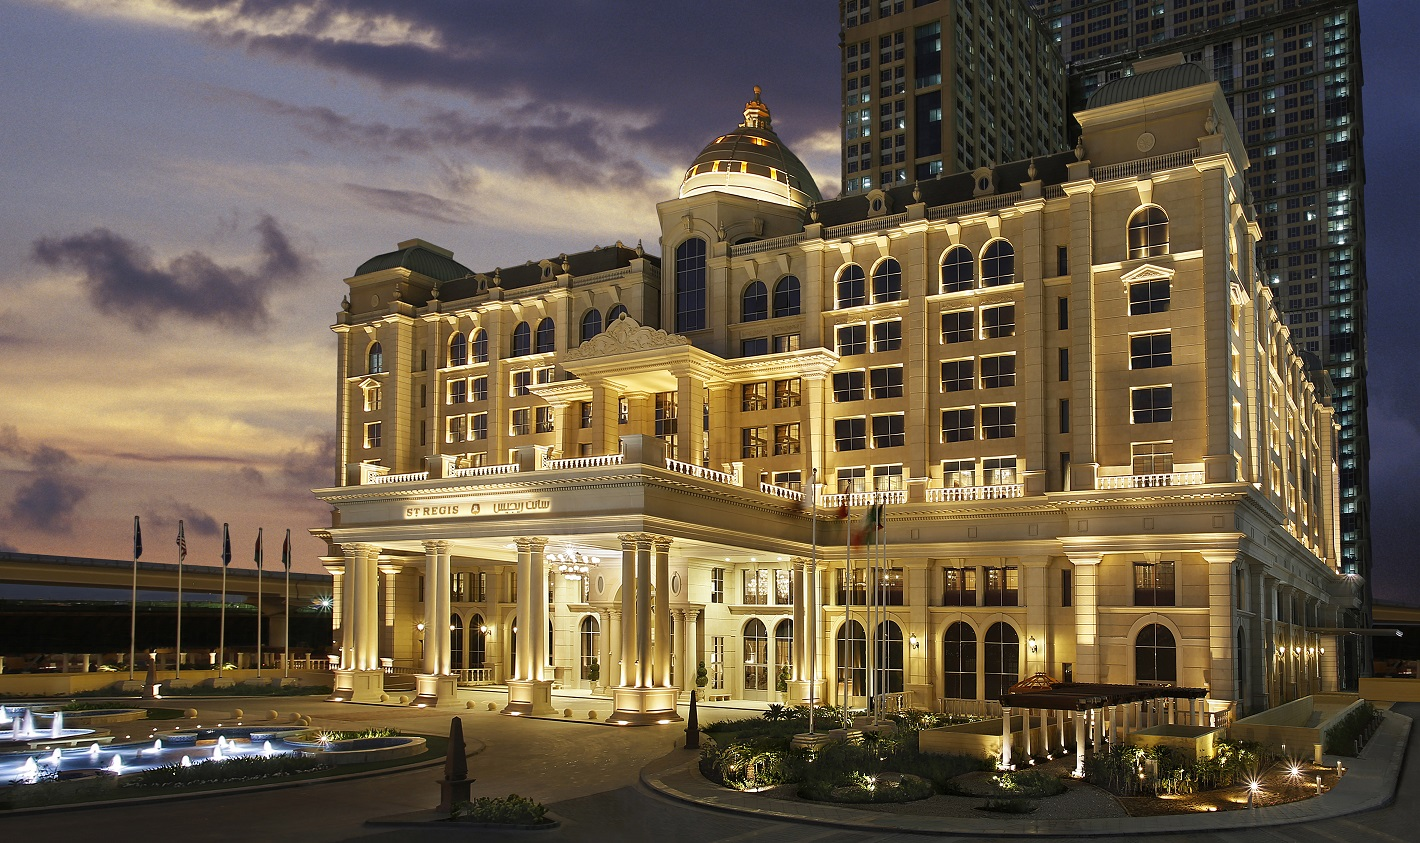 St Regis Hotels Amp Resorts Debuts In Dubai With New World Address In Al Habtoor City